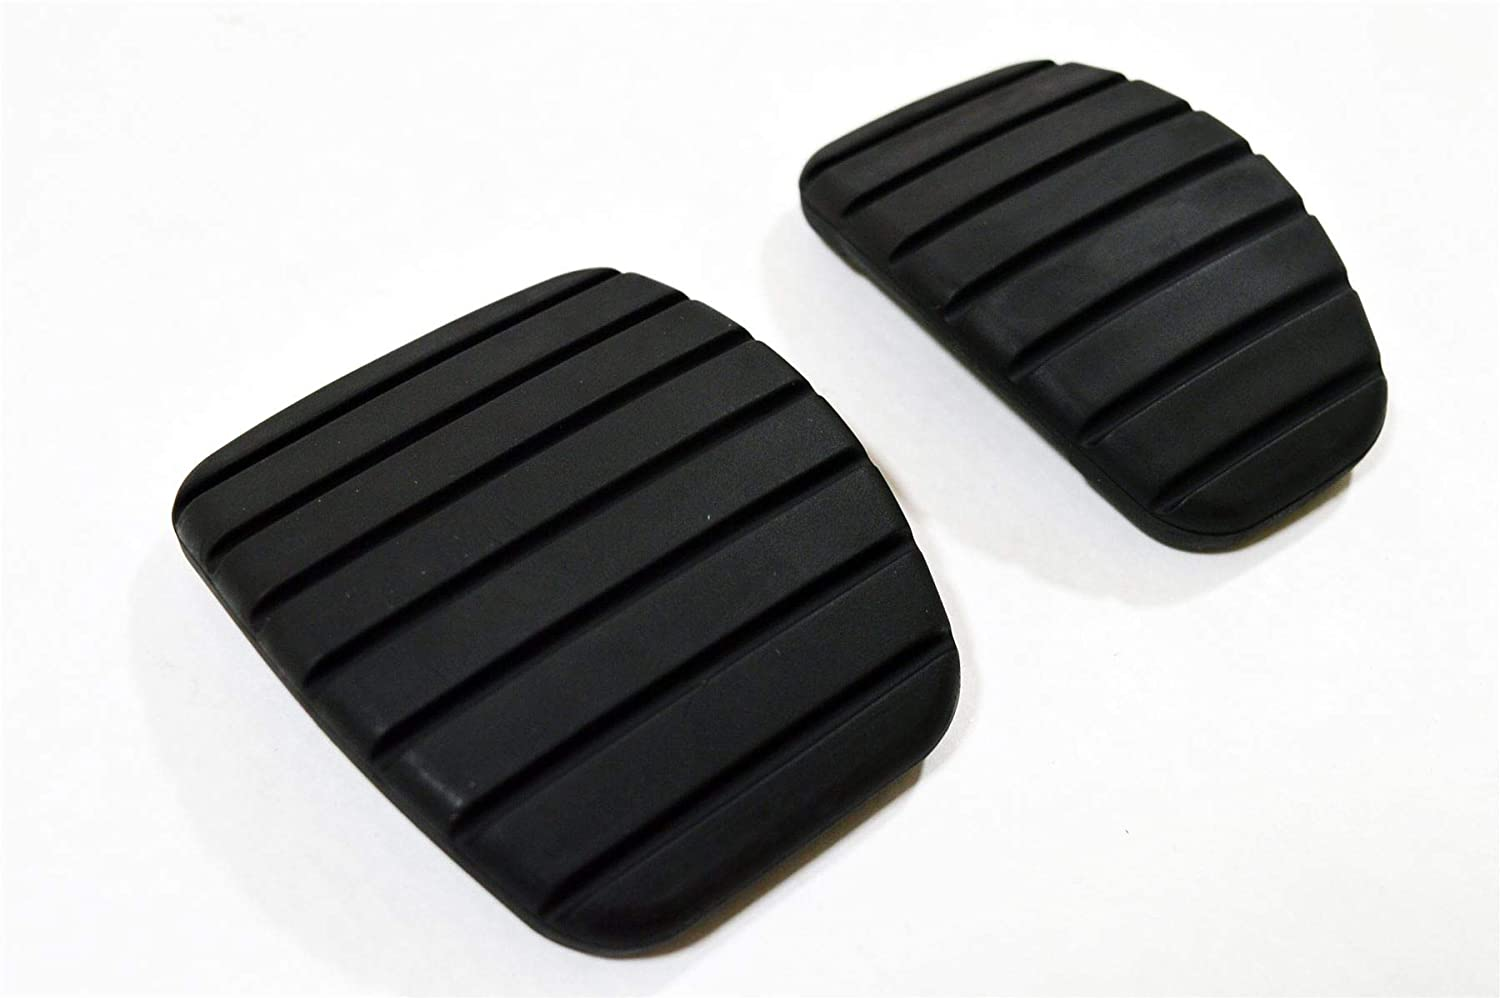 GENUINE Pedal Rubber Pads//Covers 93862008 LSC 91159860 NEW from LSC